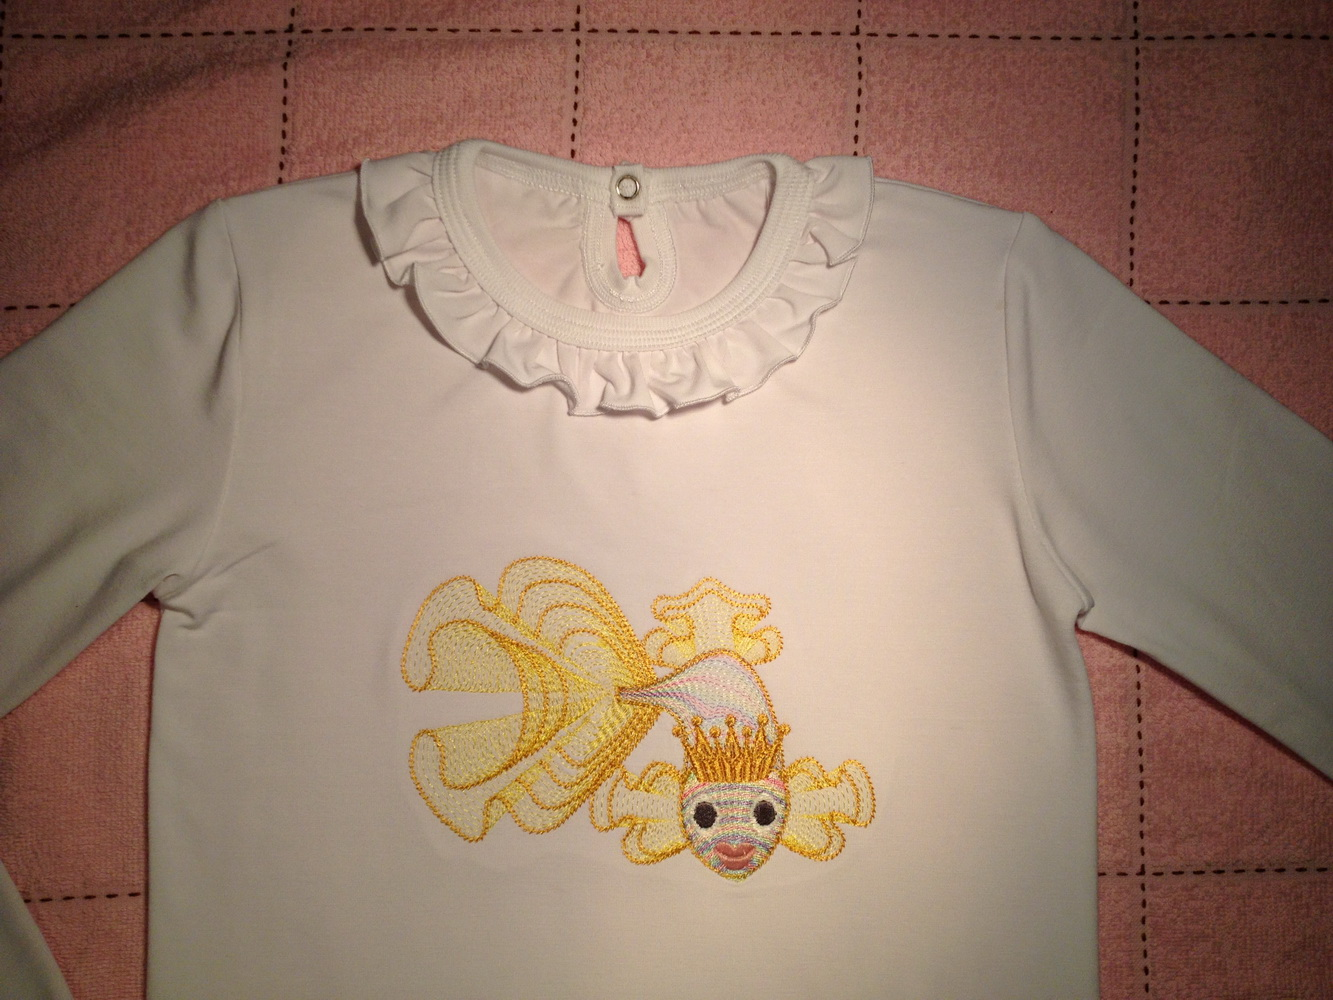 Gold fish embroidered on shirt